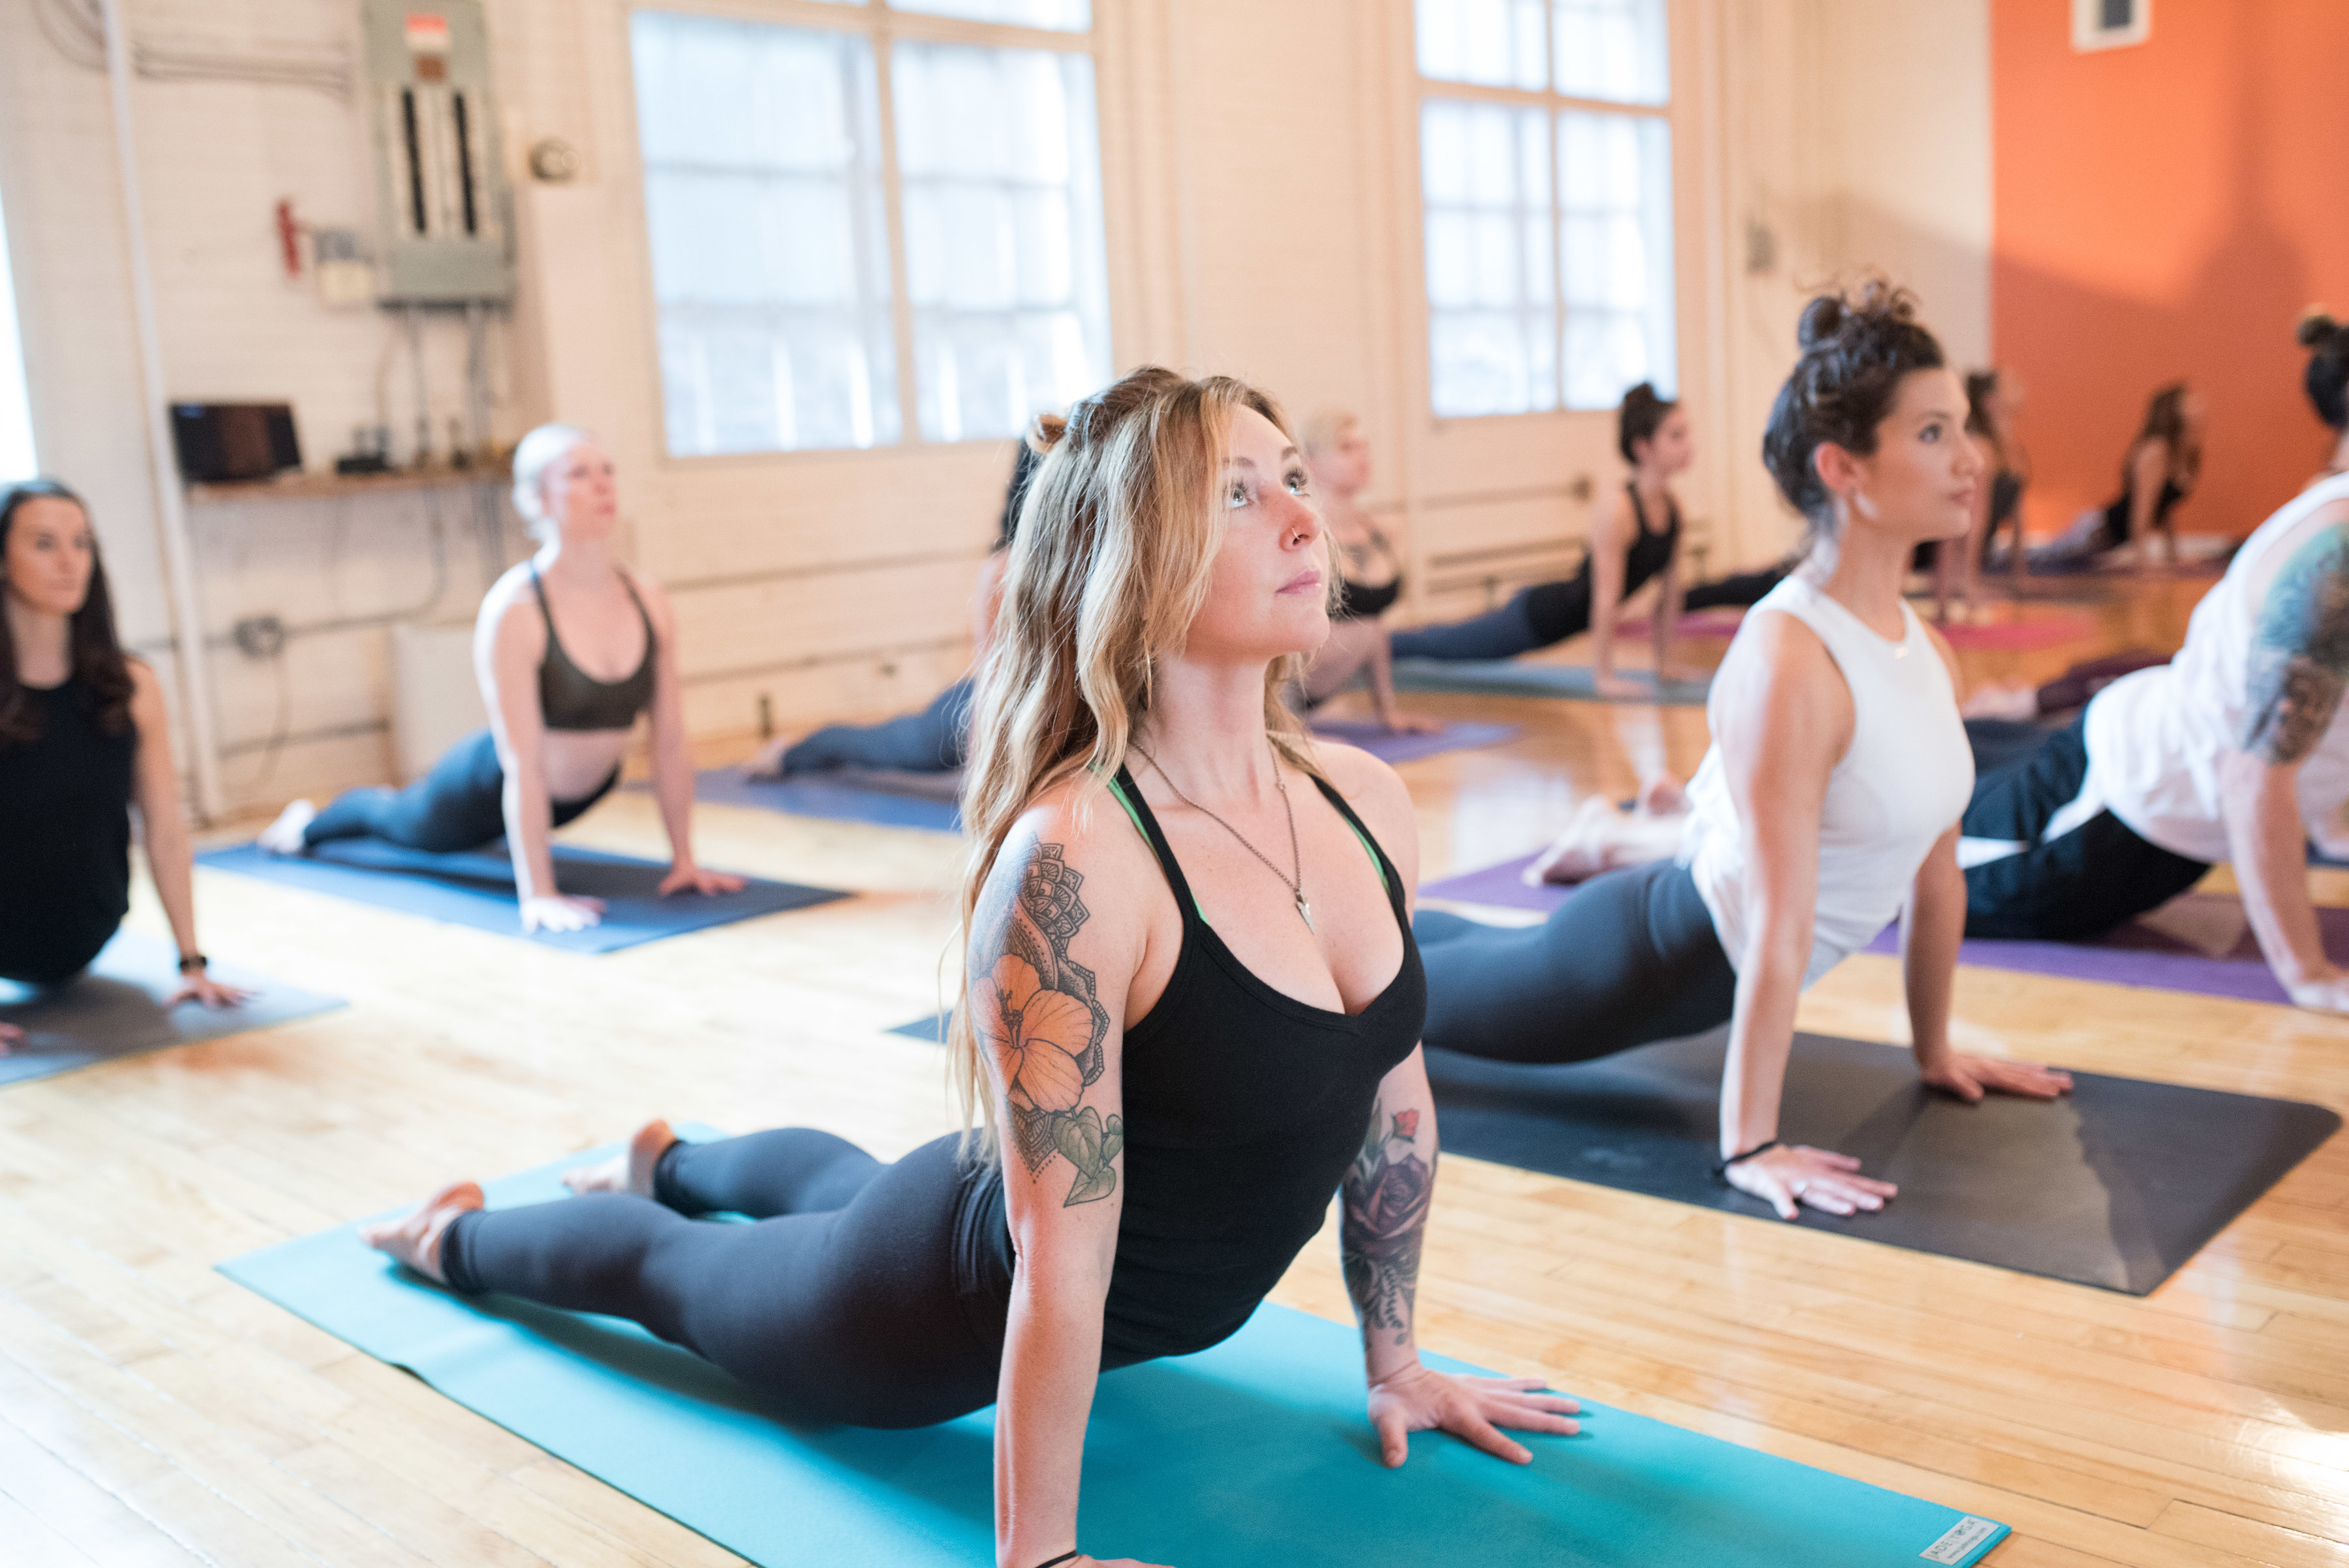 Yoga a Must in Our Fast-Paced and Ultra-Competitive World